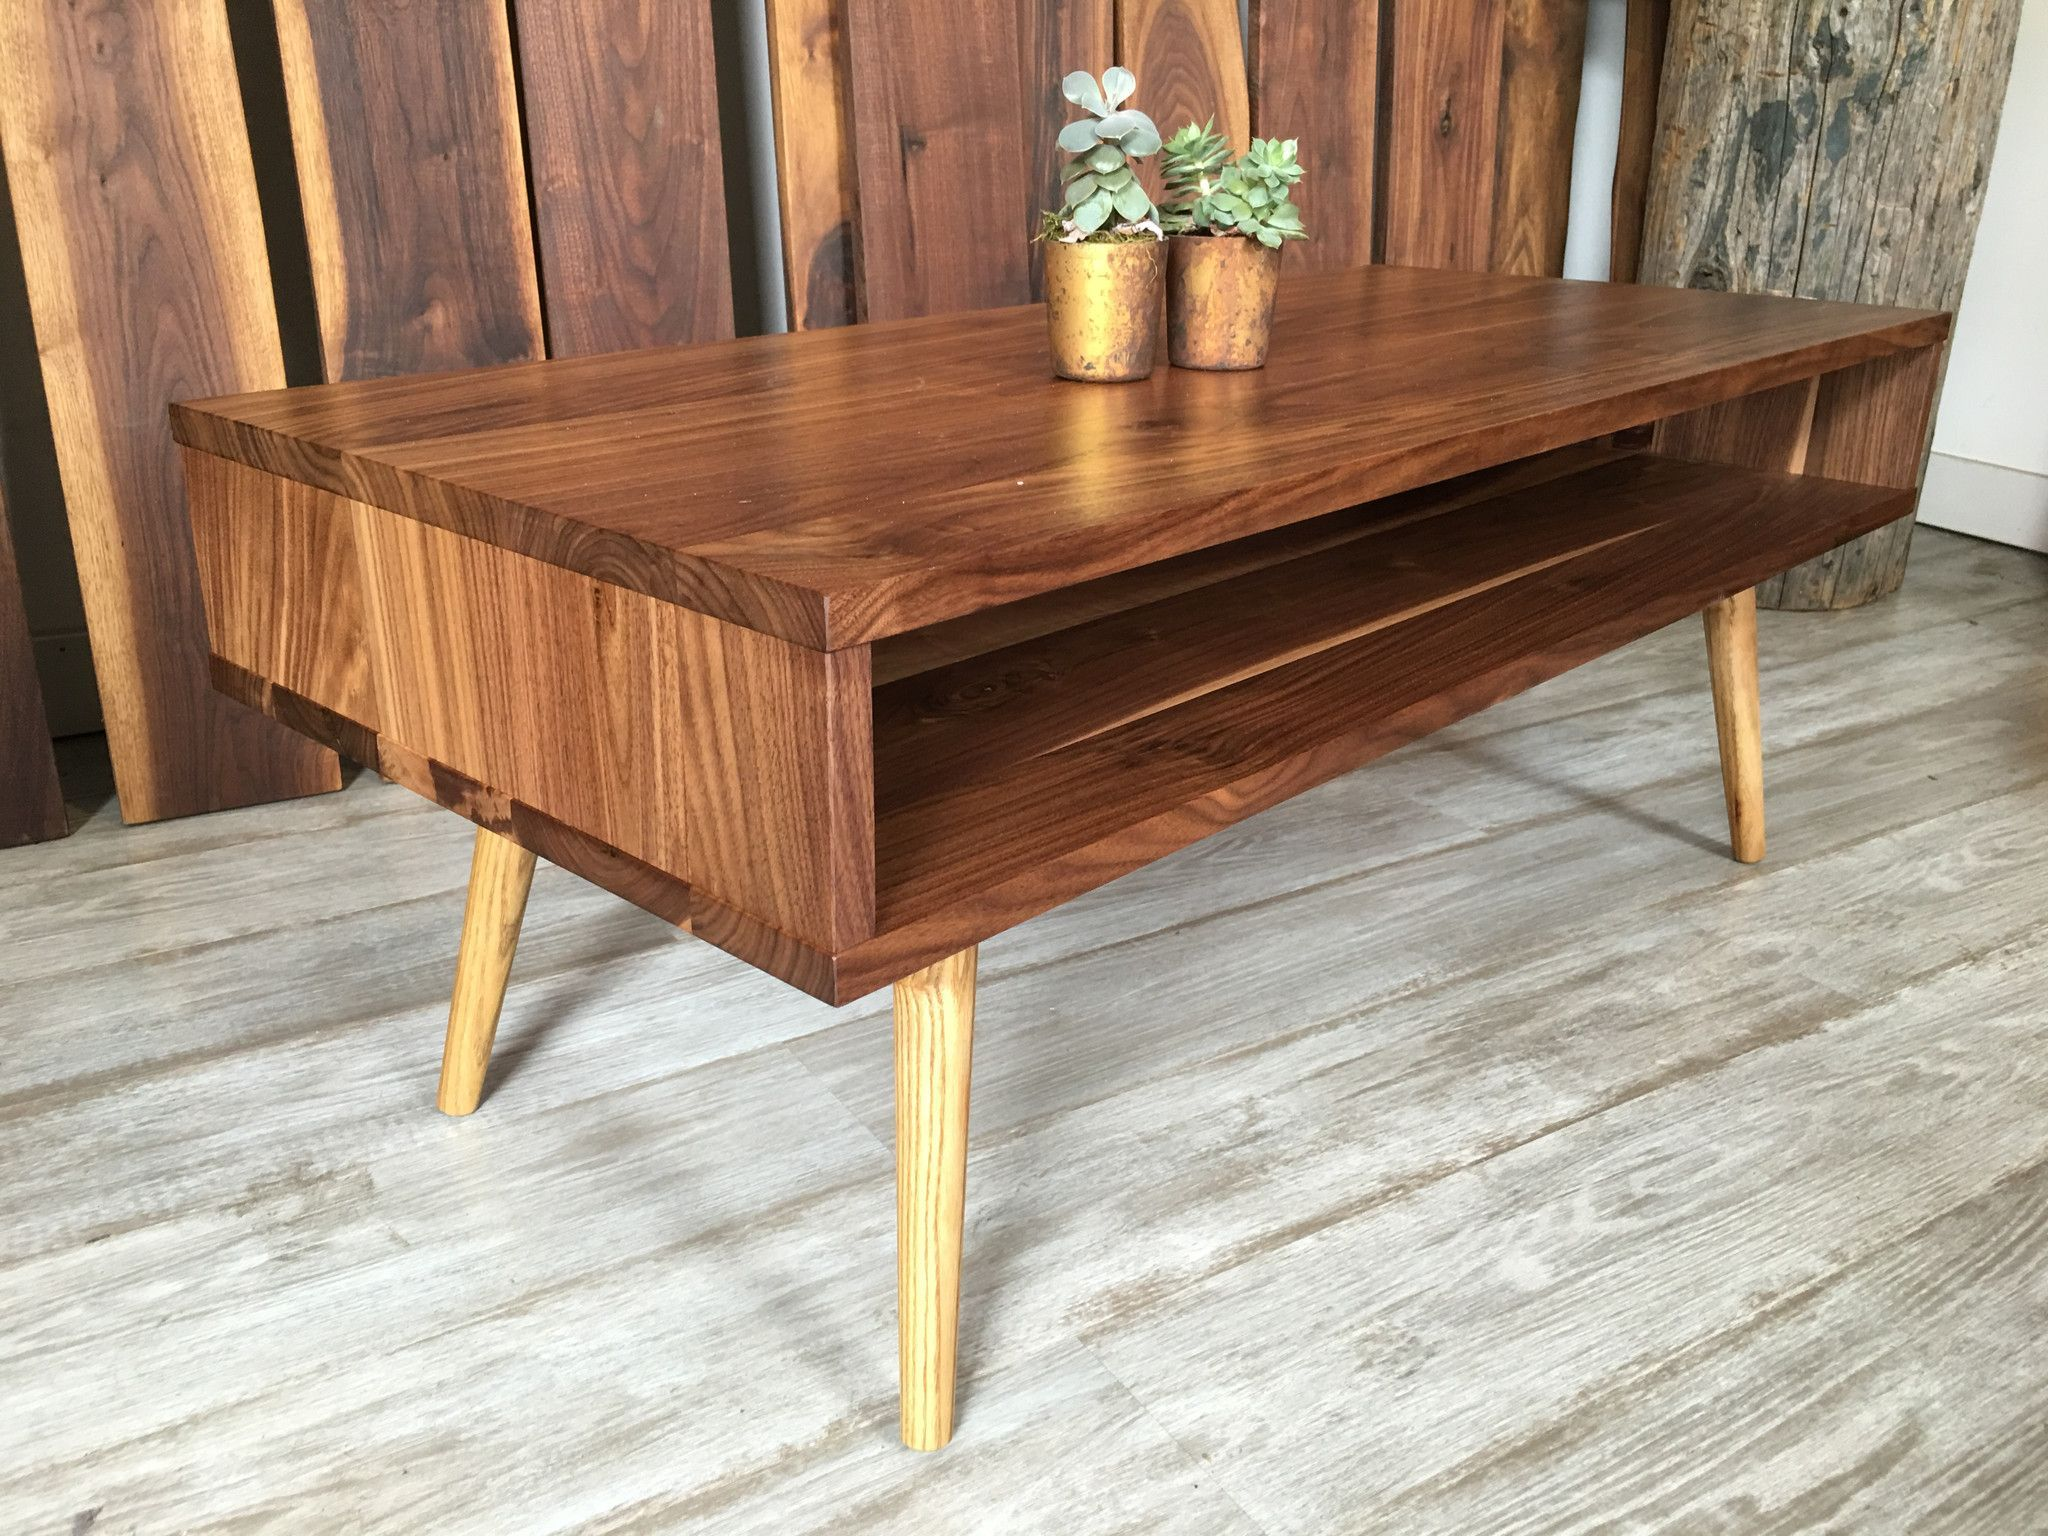 898dcf4c60be Classic Mid Century Modern Coffee Table